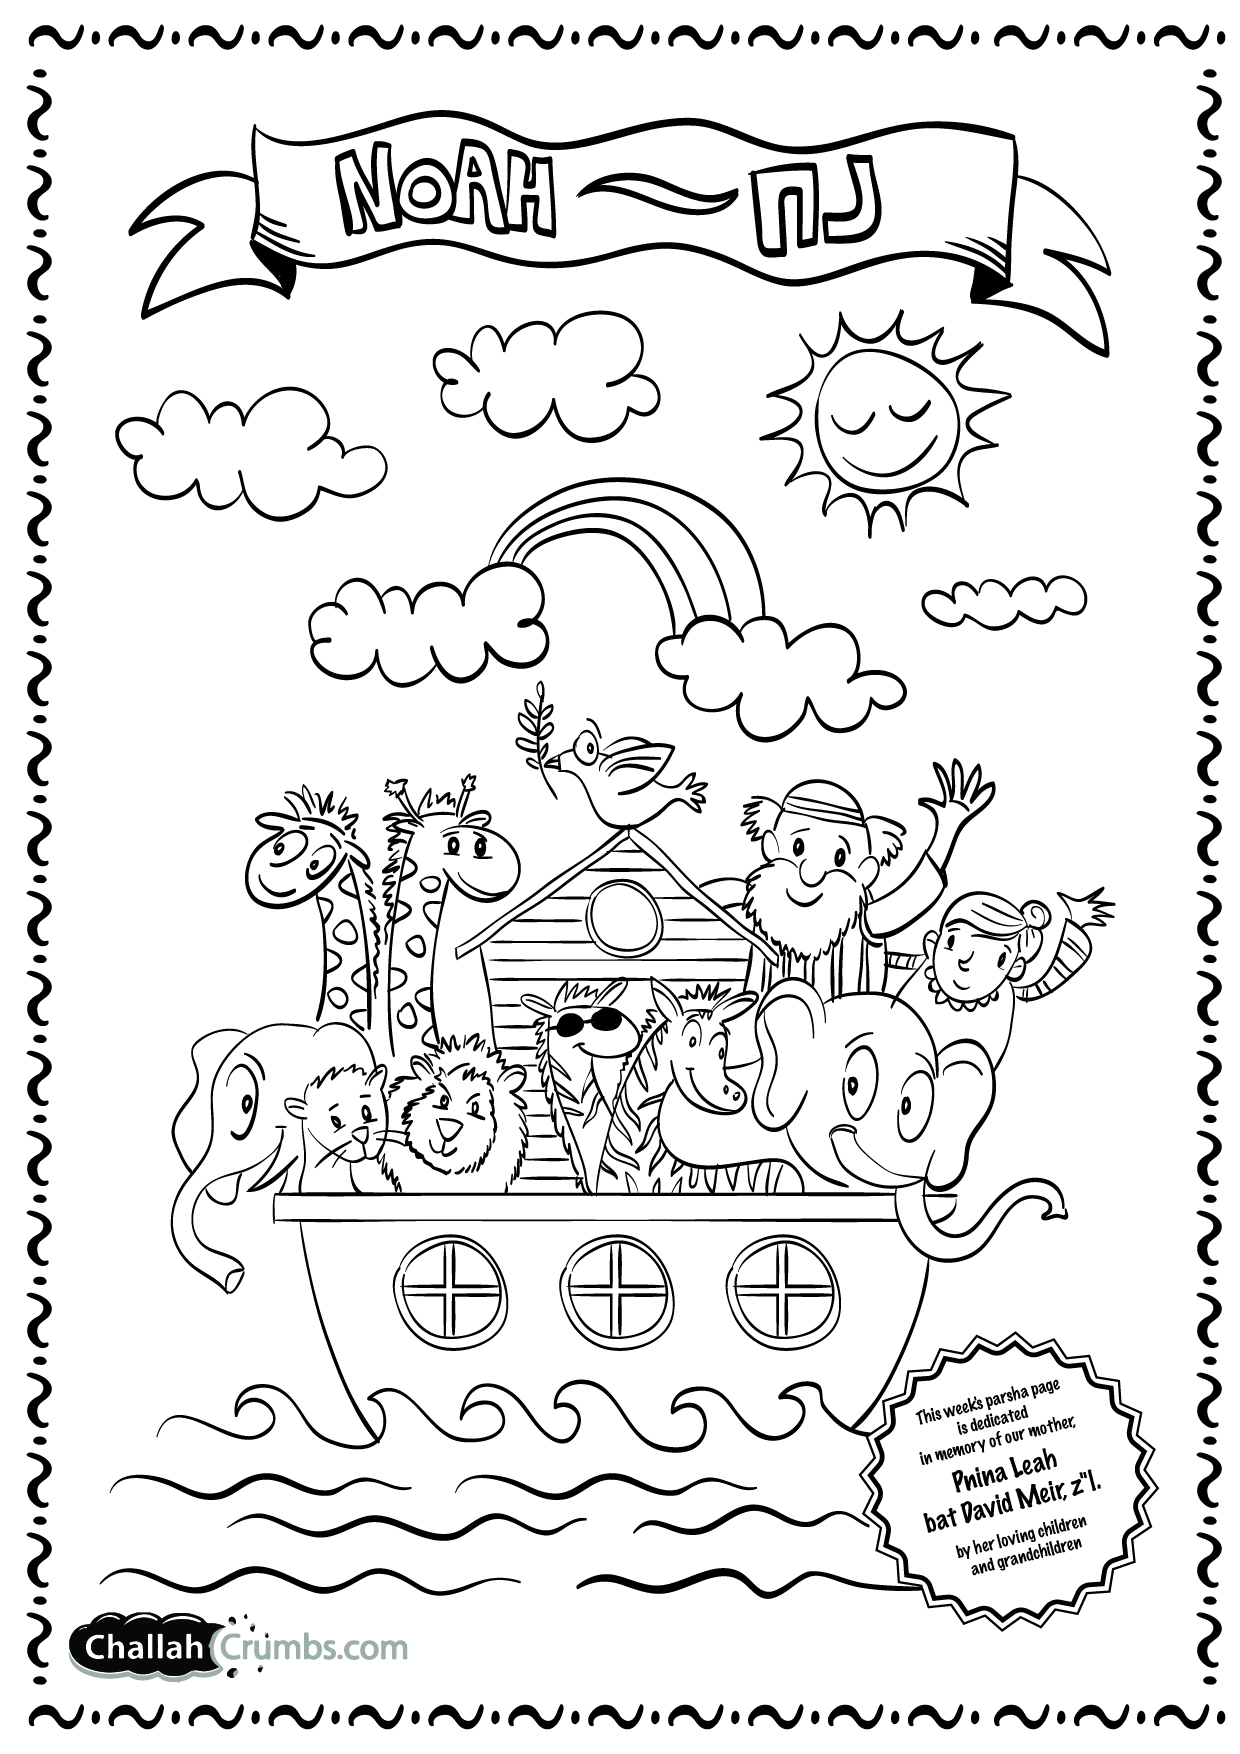 parshat noach coloring page click on picture to print